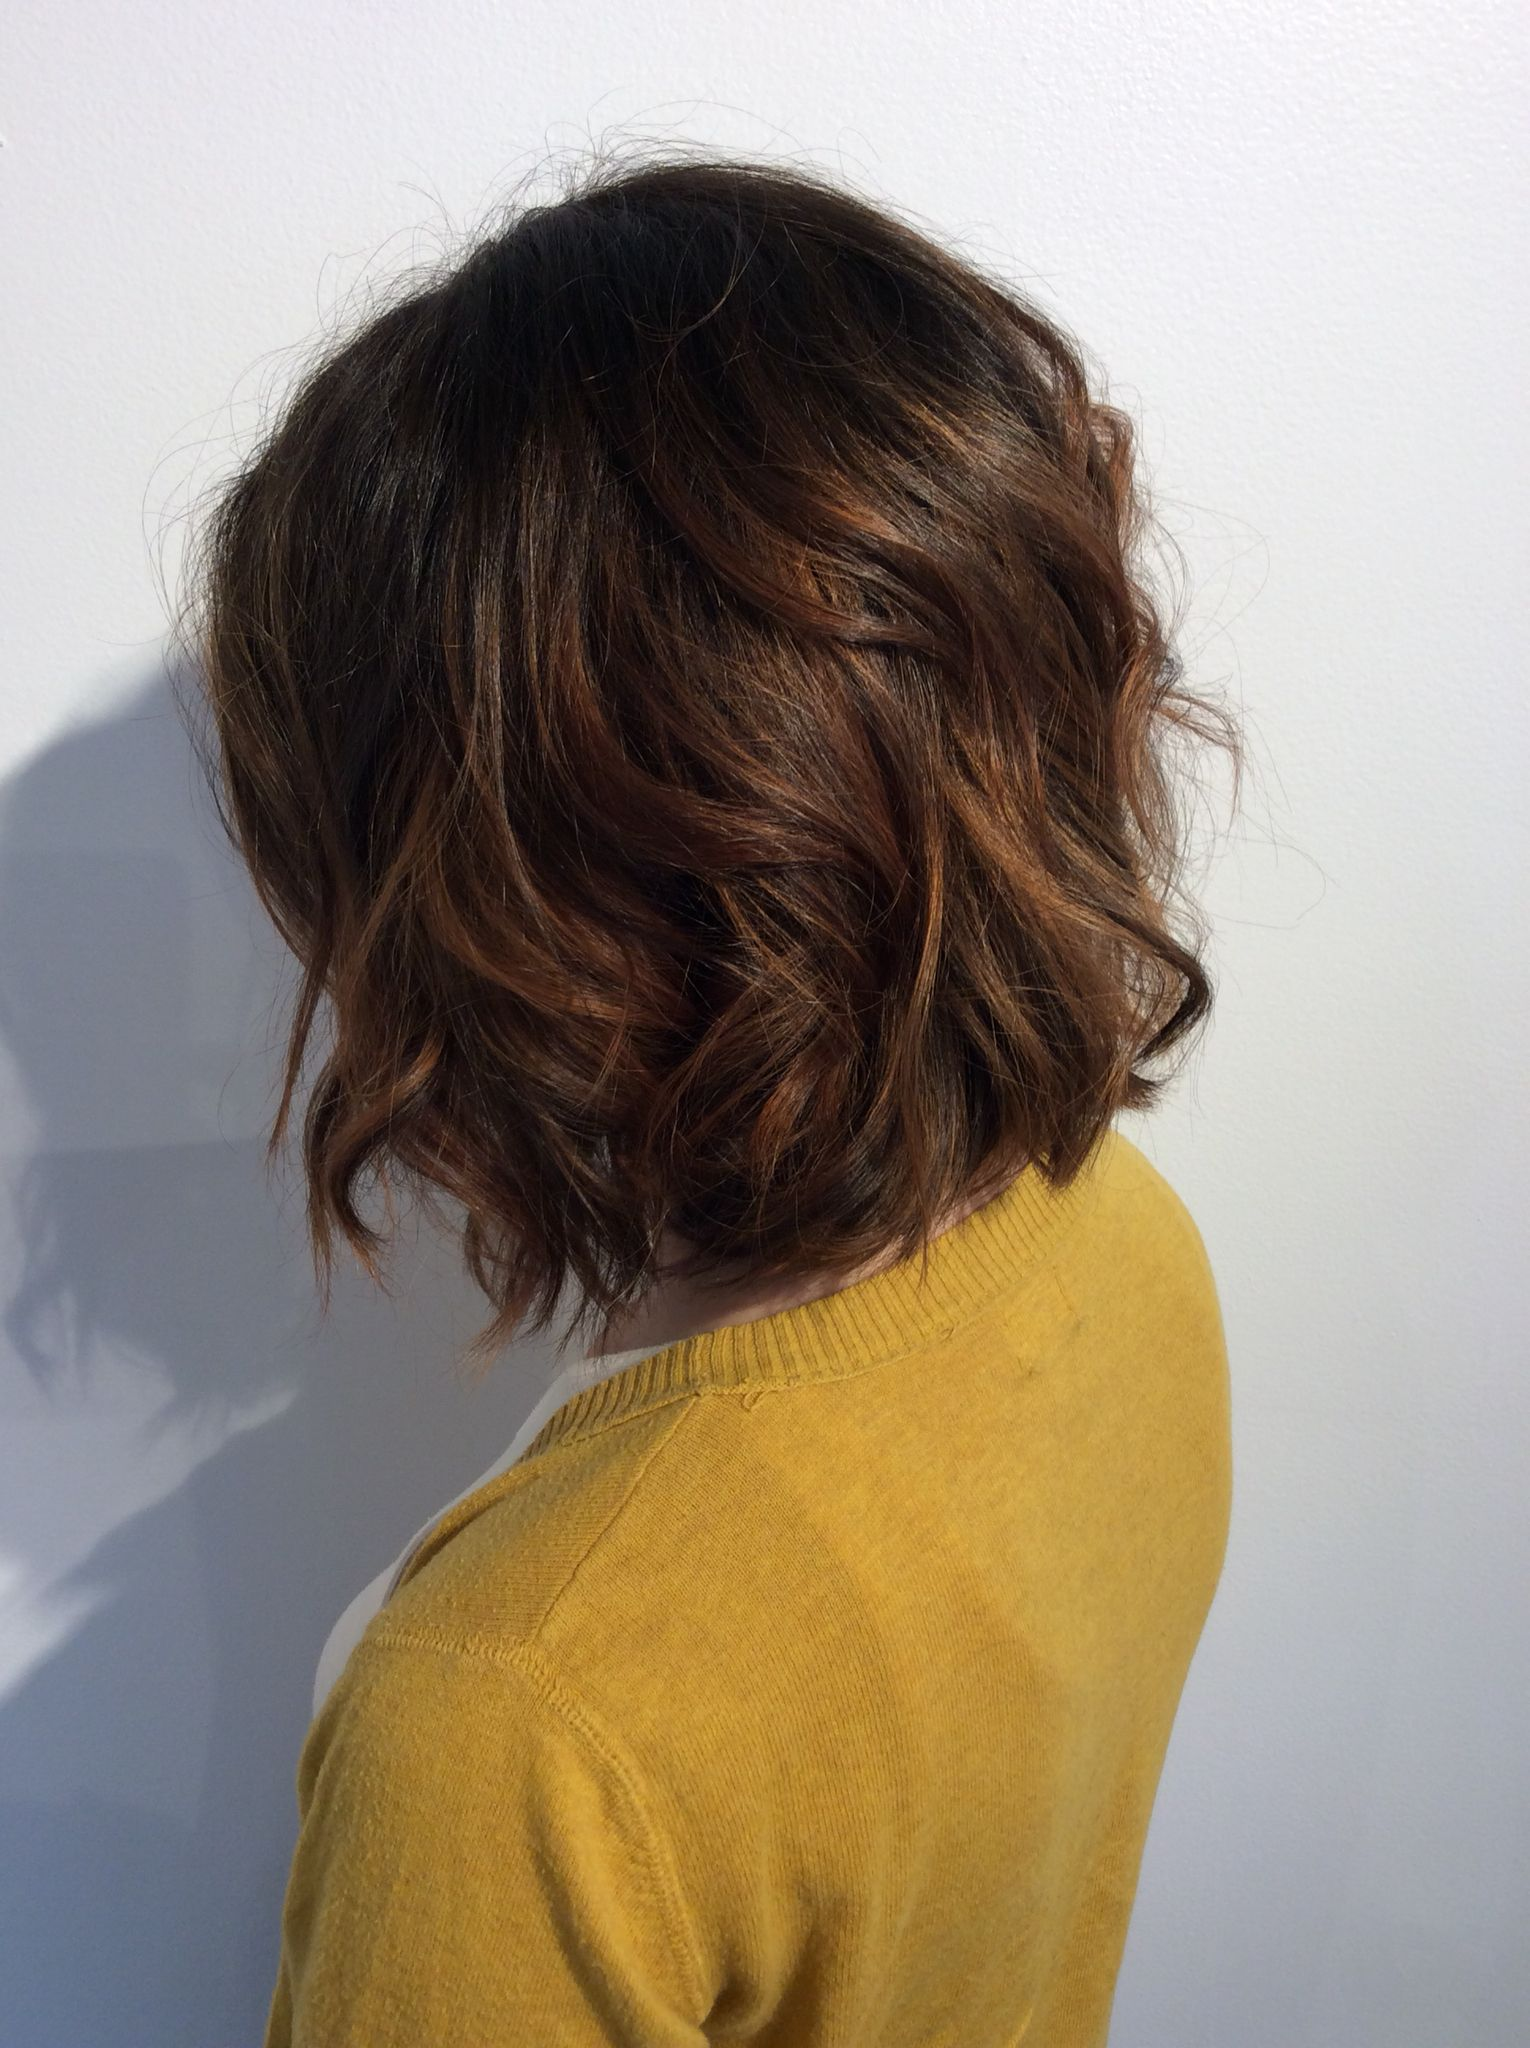 balayage on short dark brown hair | balayage / ombré | pinterest